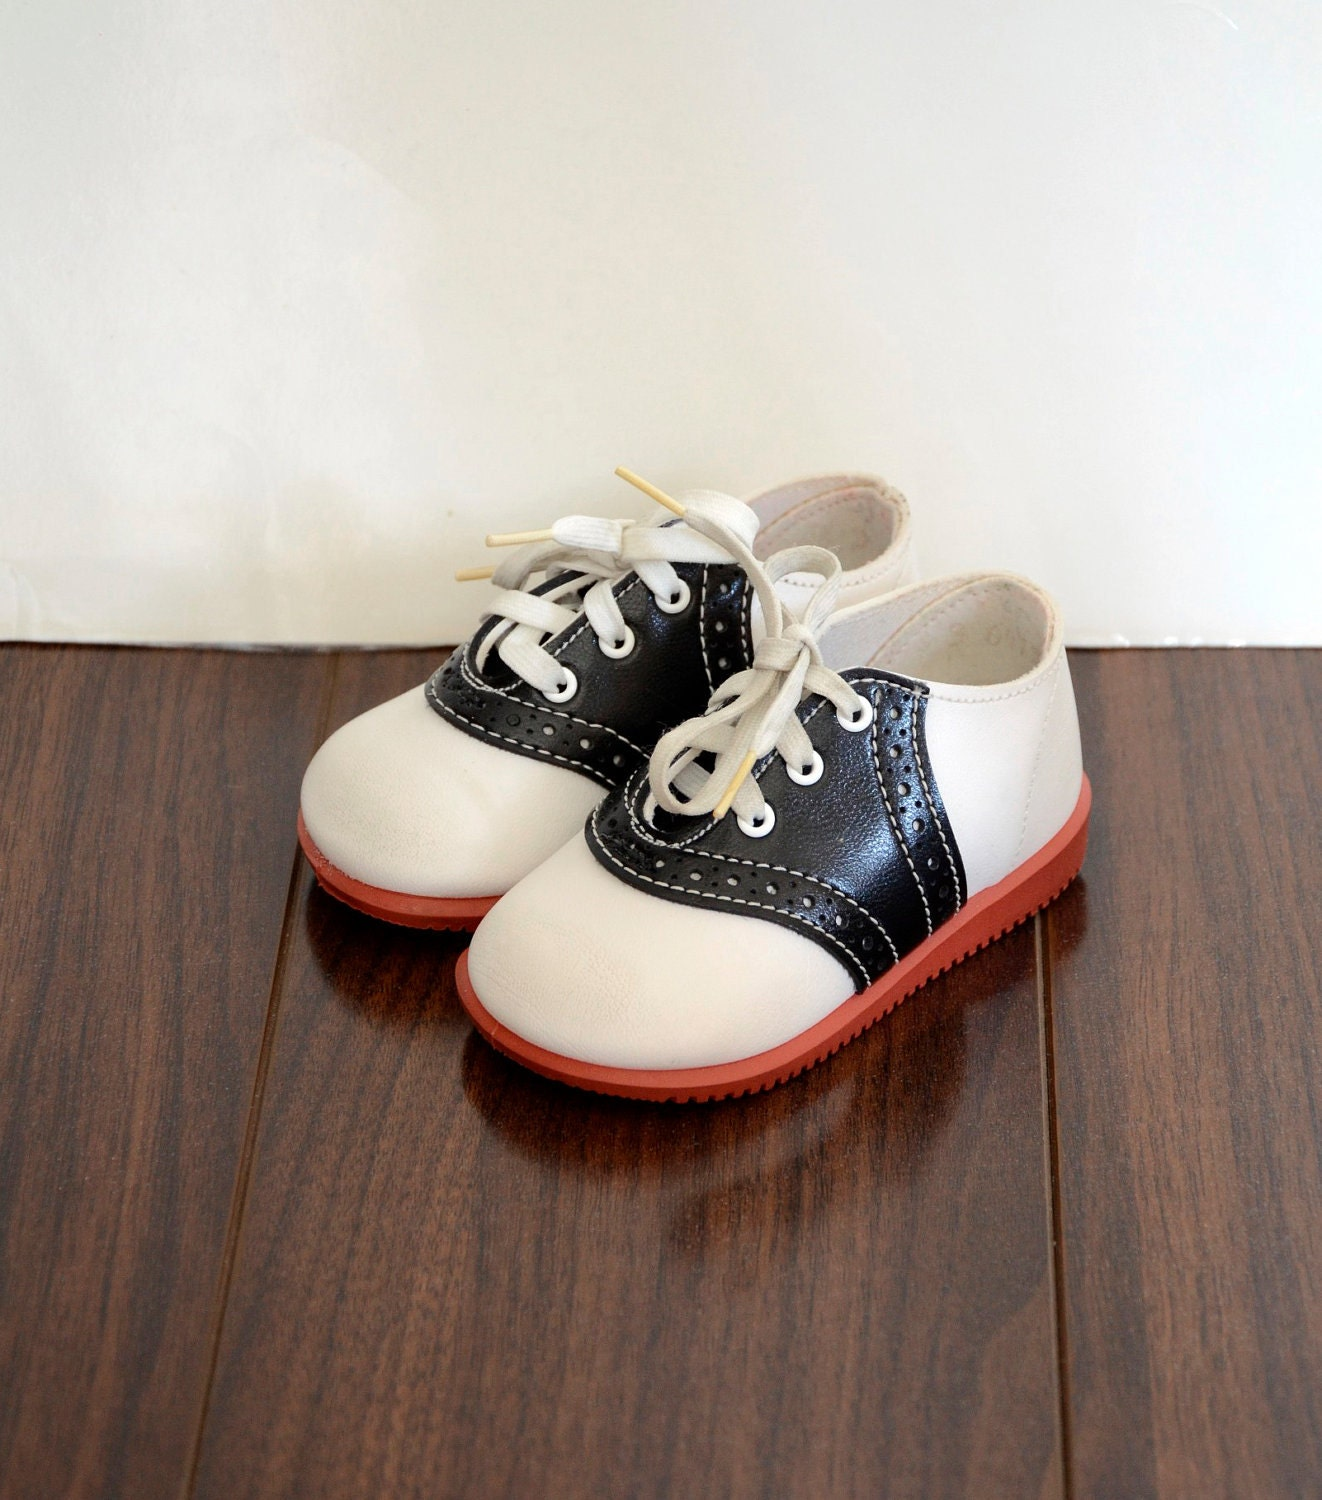 Etsy Vintage Baby Shoes